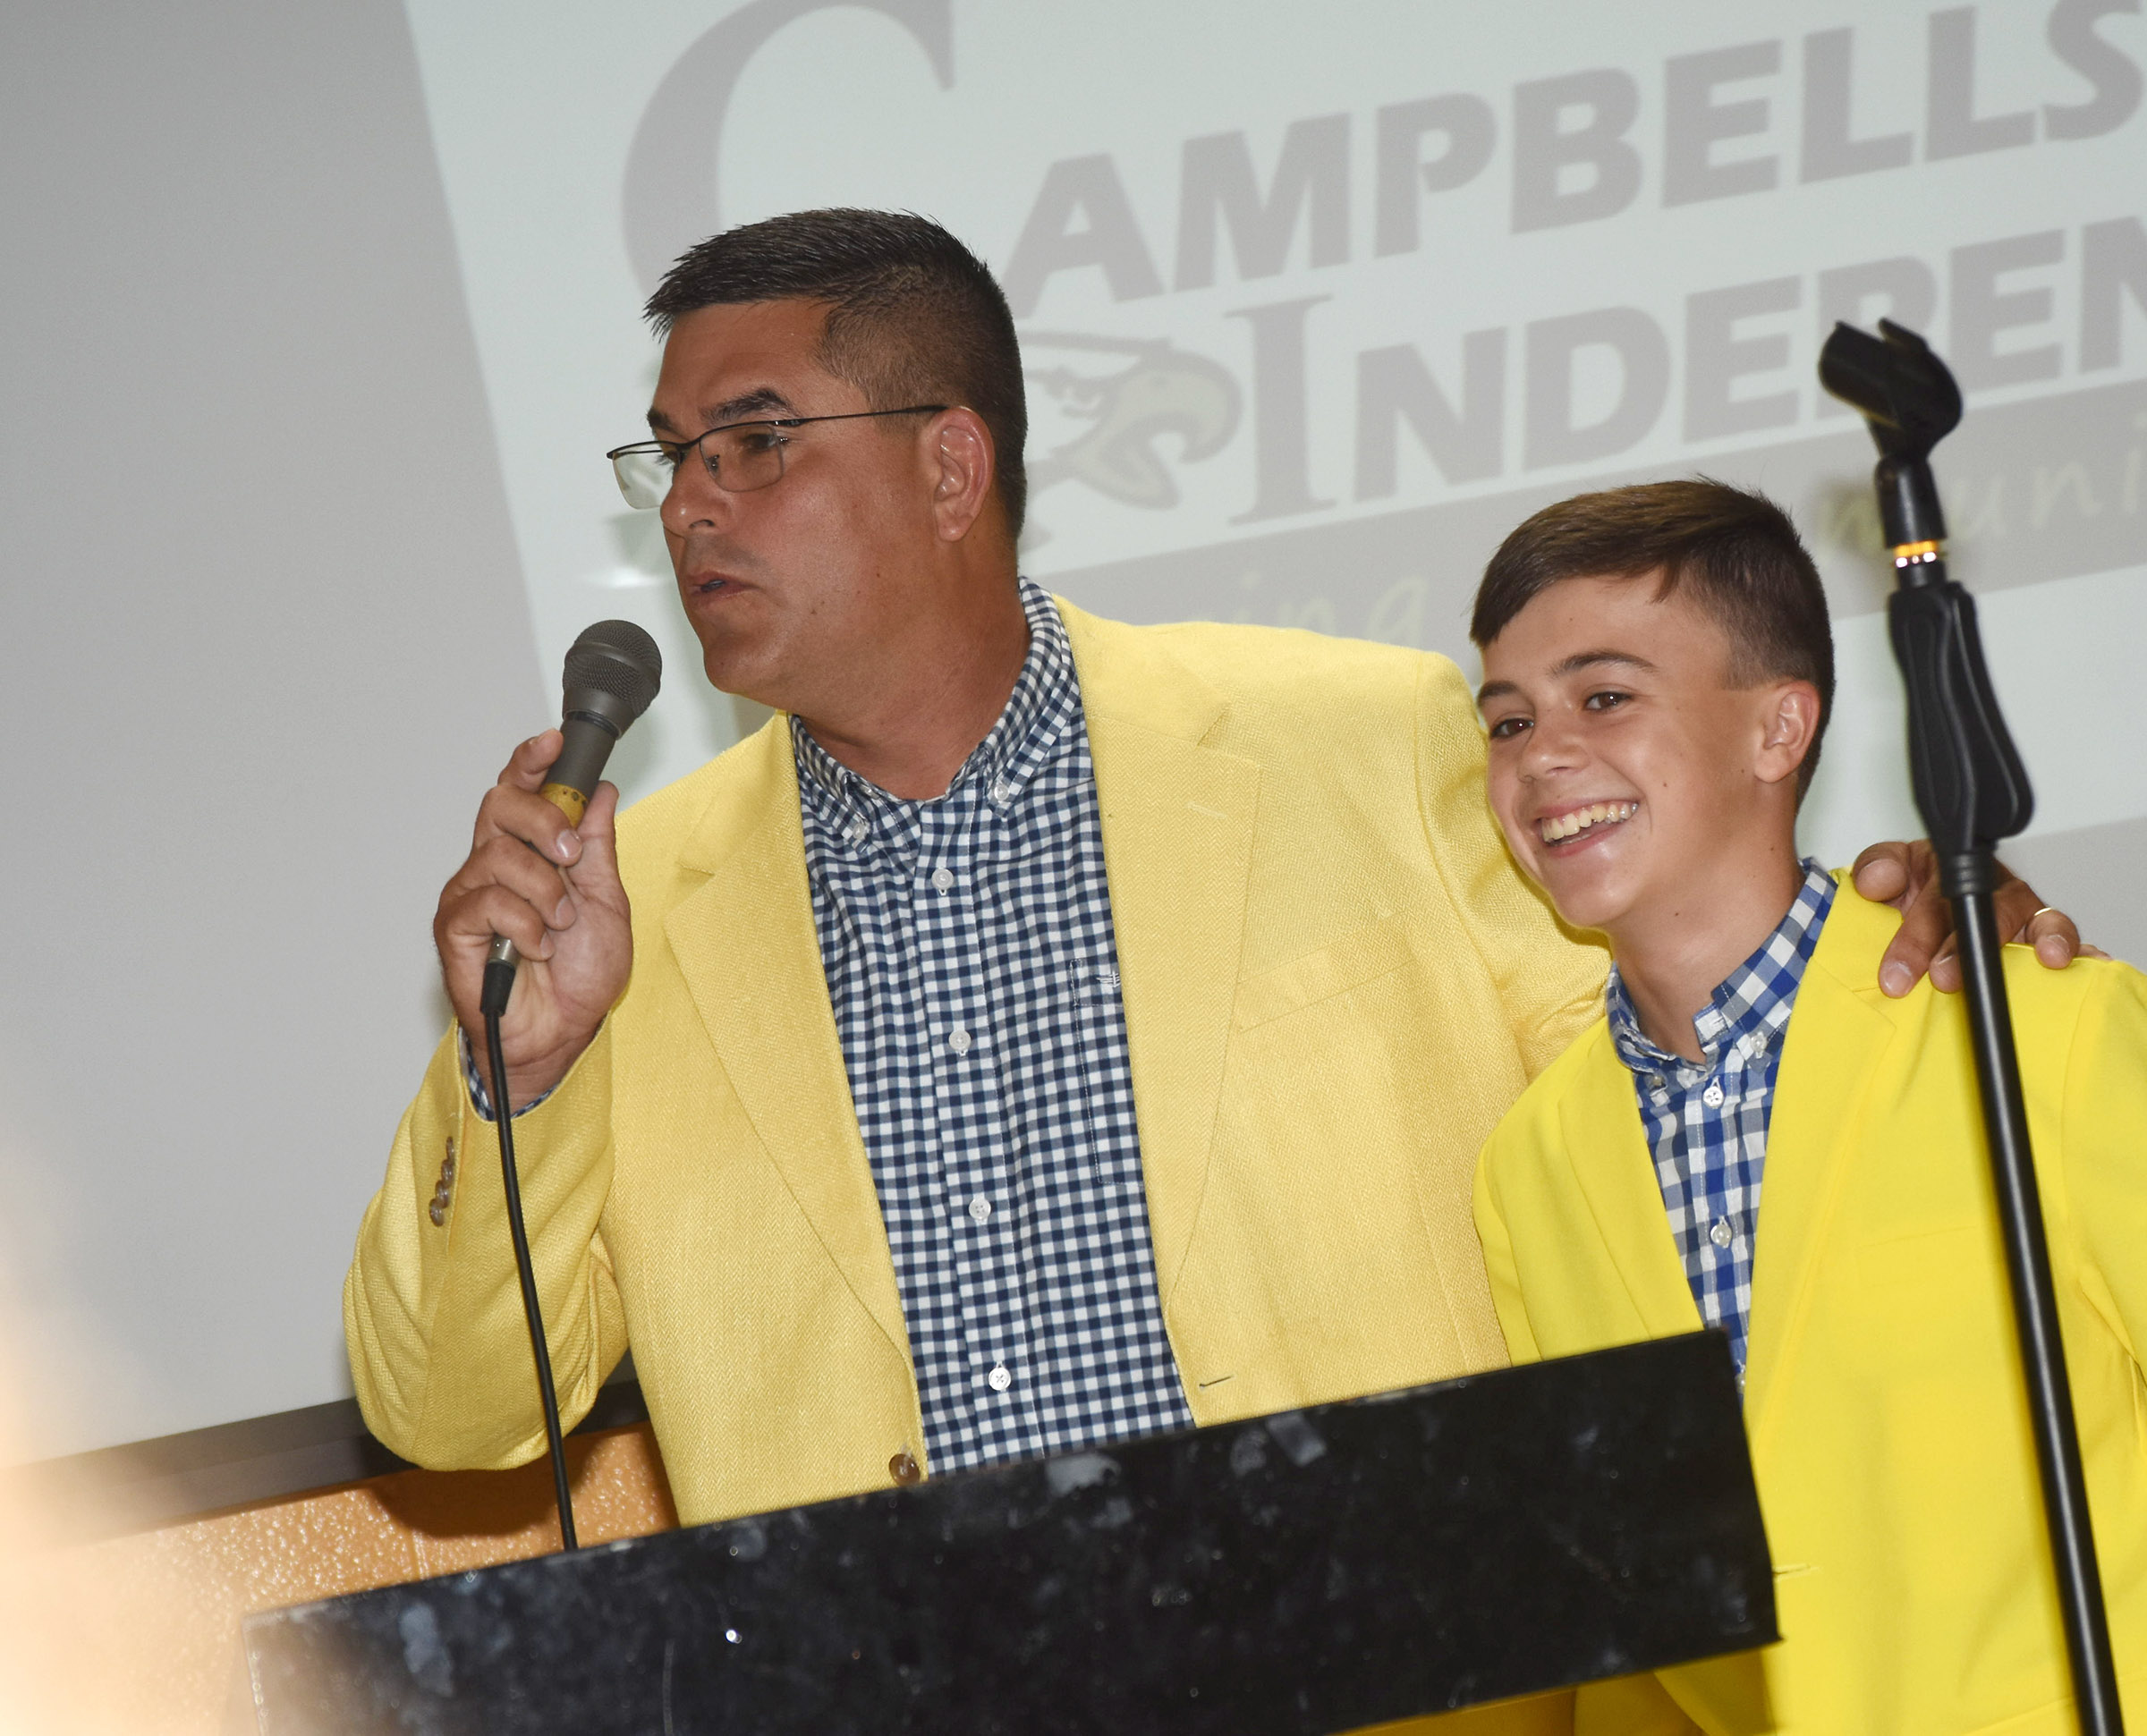 Campbellsville Independent Schools Superintendent Kirby Smith introduces Campbellsville Middle School eighth-grader Chase Hord, who was elected National Junior Beta secretary at the national convention this summer. After Hord was elected, CMS Beta Club students asked Smith to wear a yellow suit, like Hord wore during his campaign. Smith kept that promise during the opening day workshop. Hord led the opening prayer at the workshop.